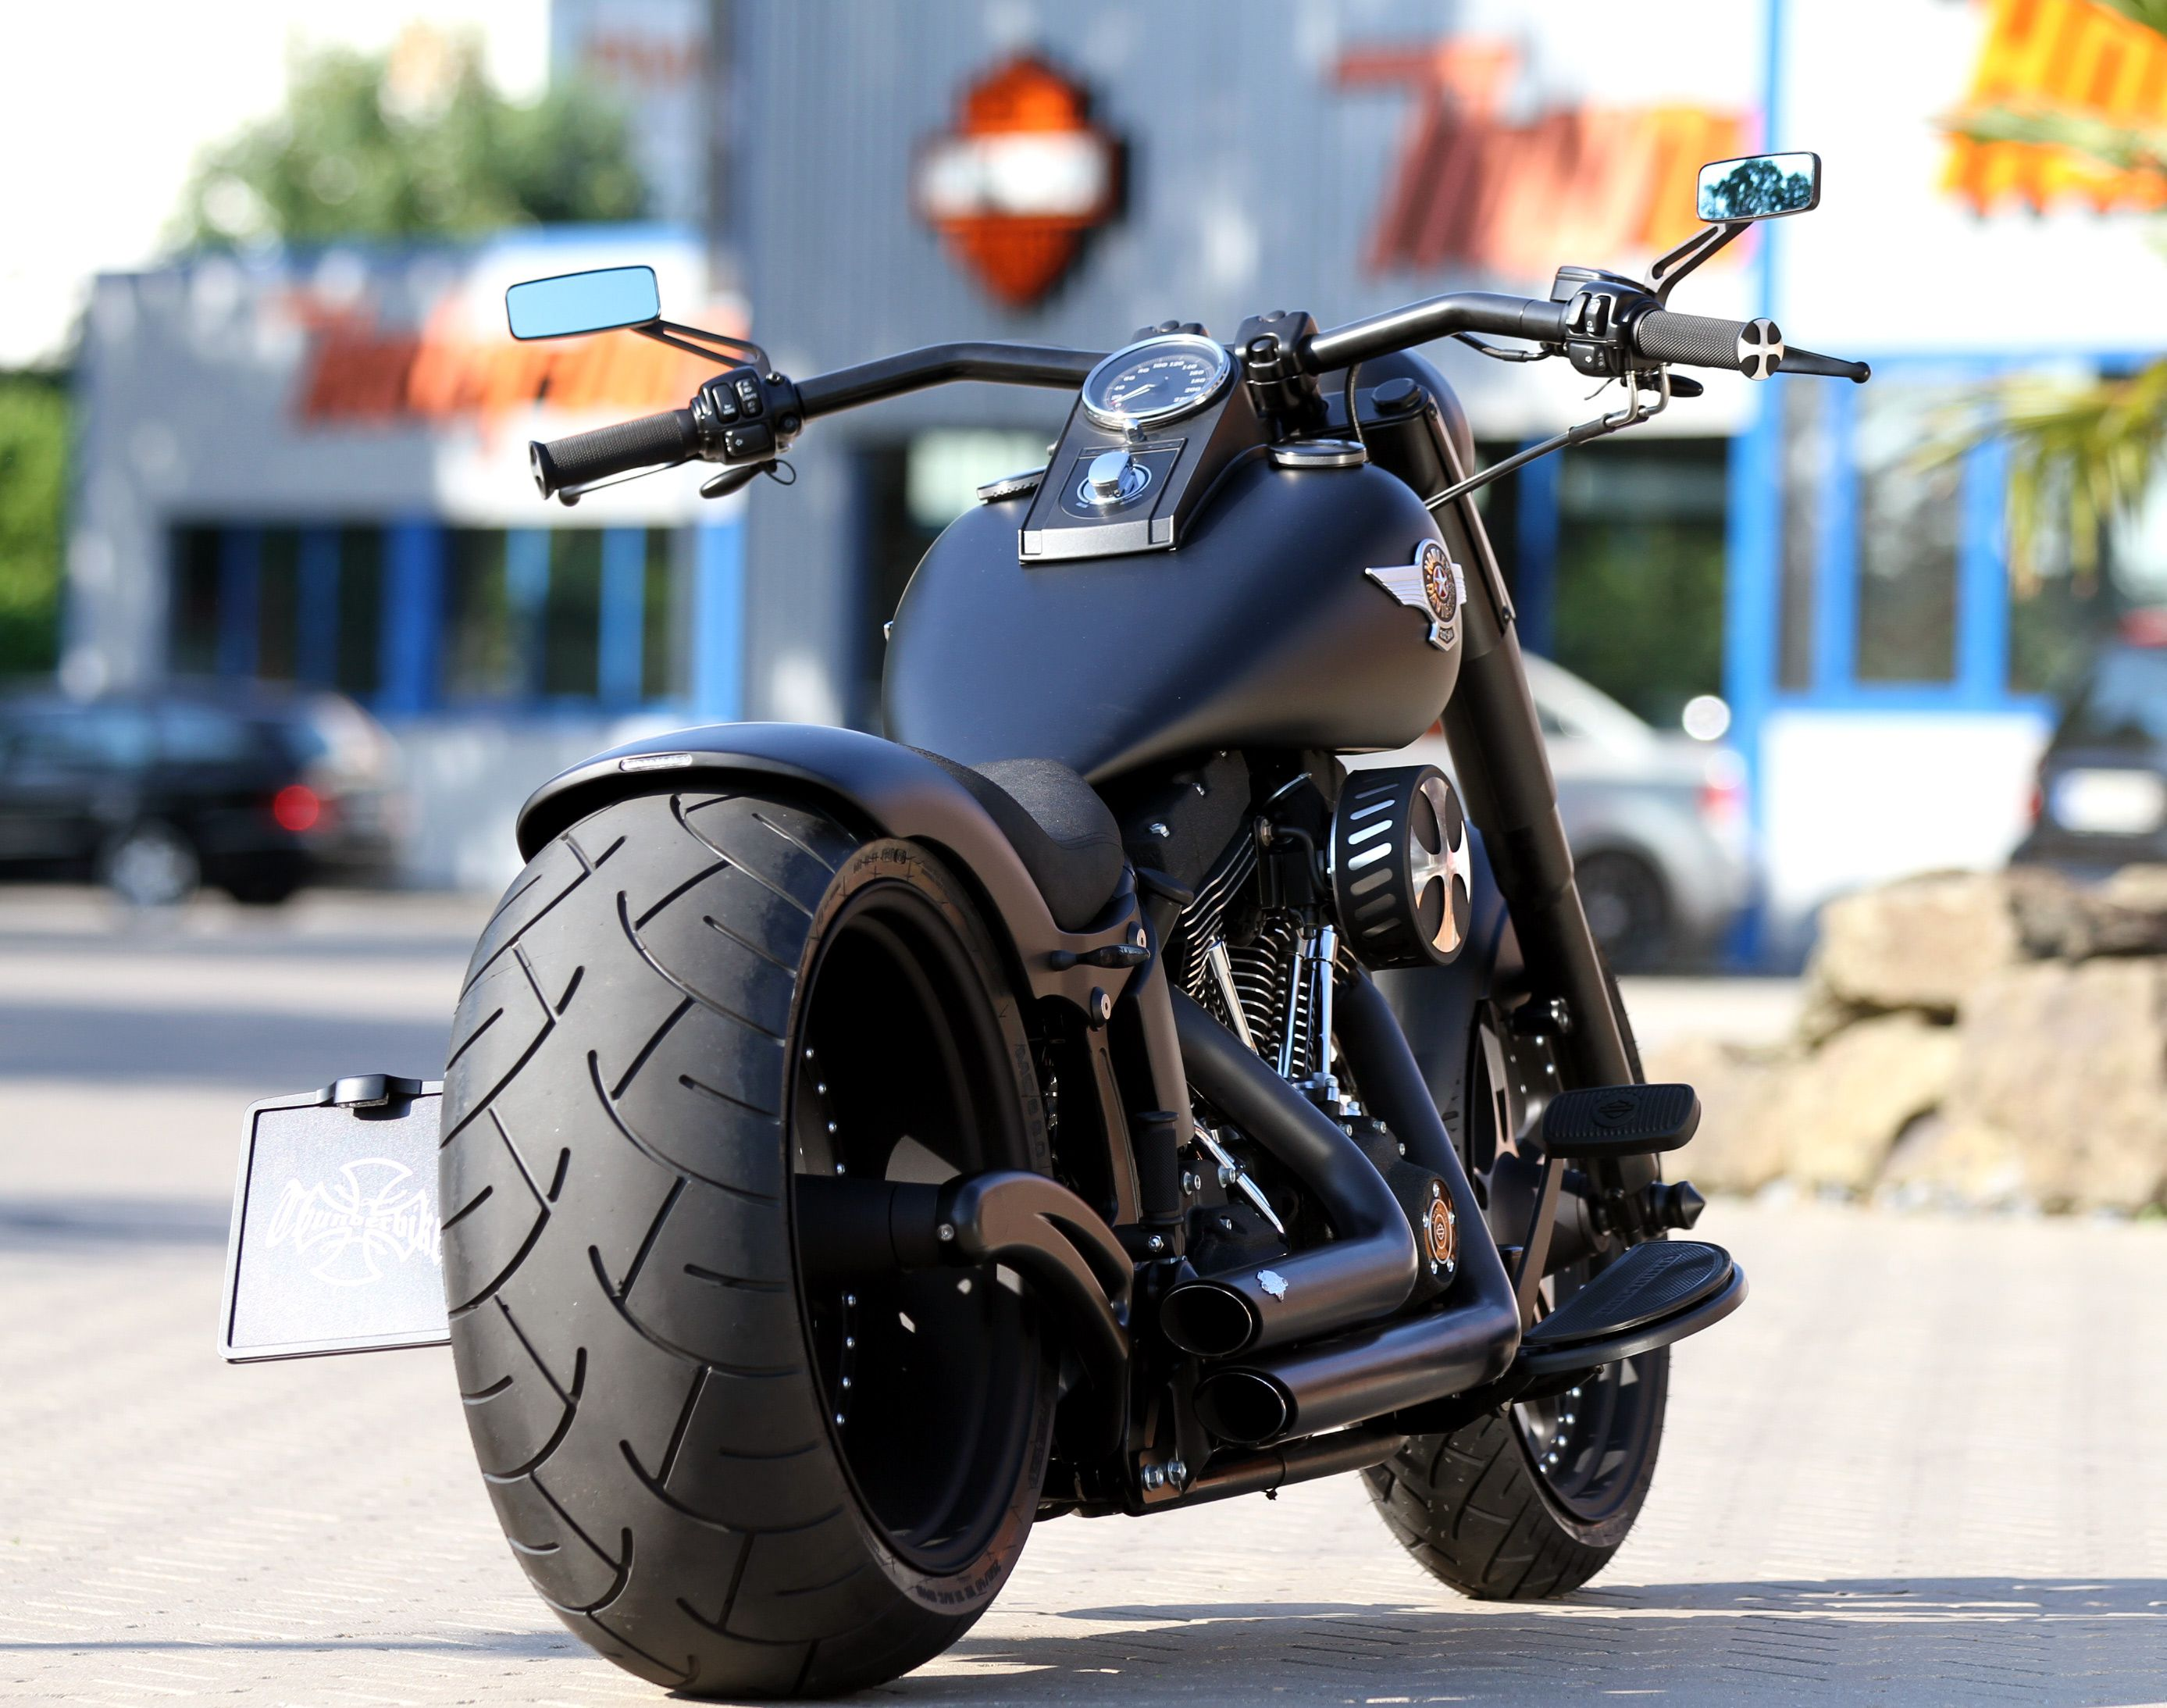 thunderbike customized harley davidson fat boy motorized vehicles cars trucks bikes and. Black Bedroom Furniture Sets. Home Design Ideas